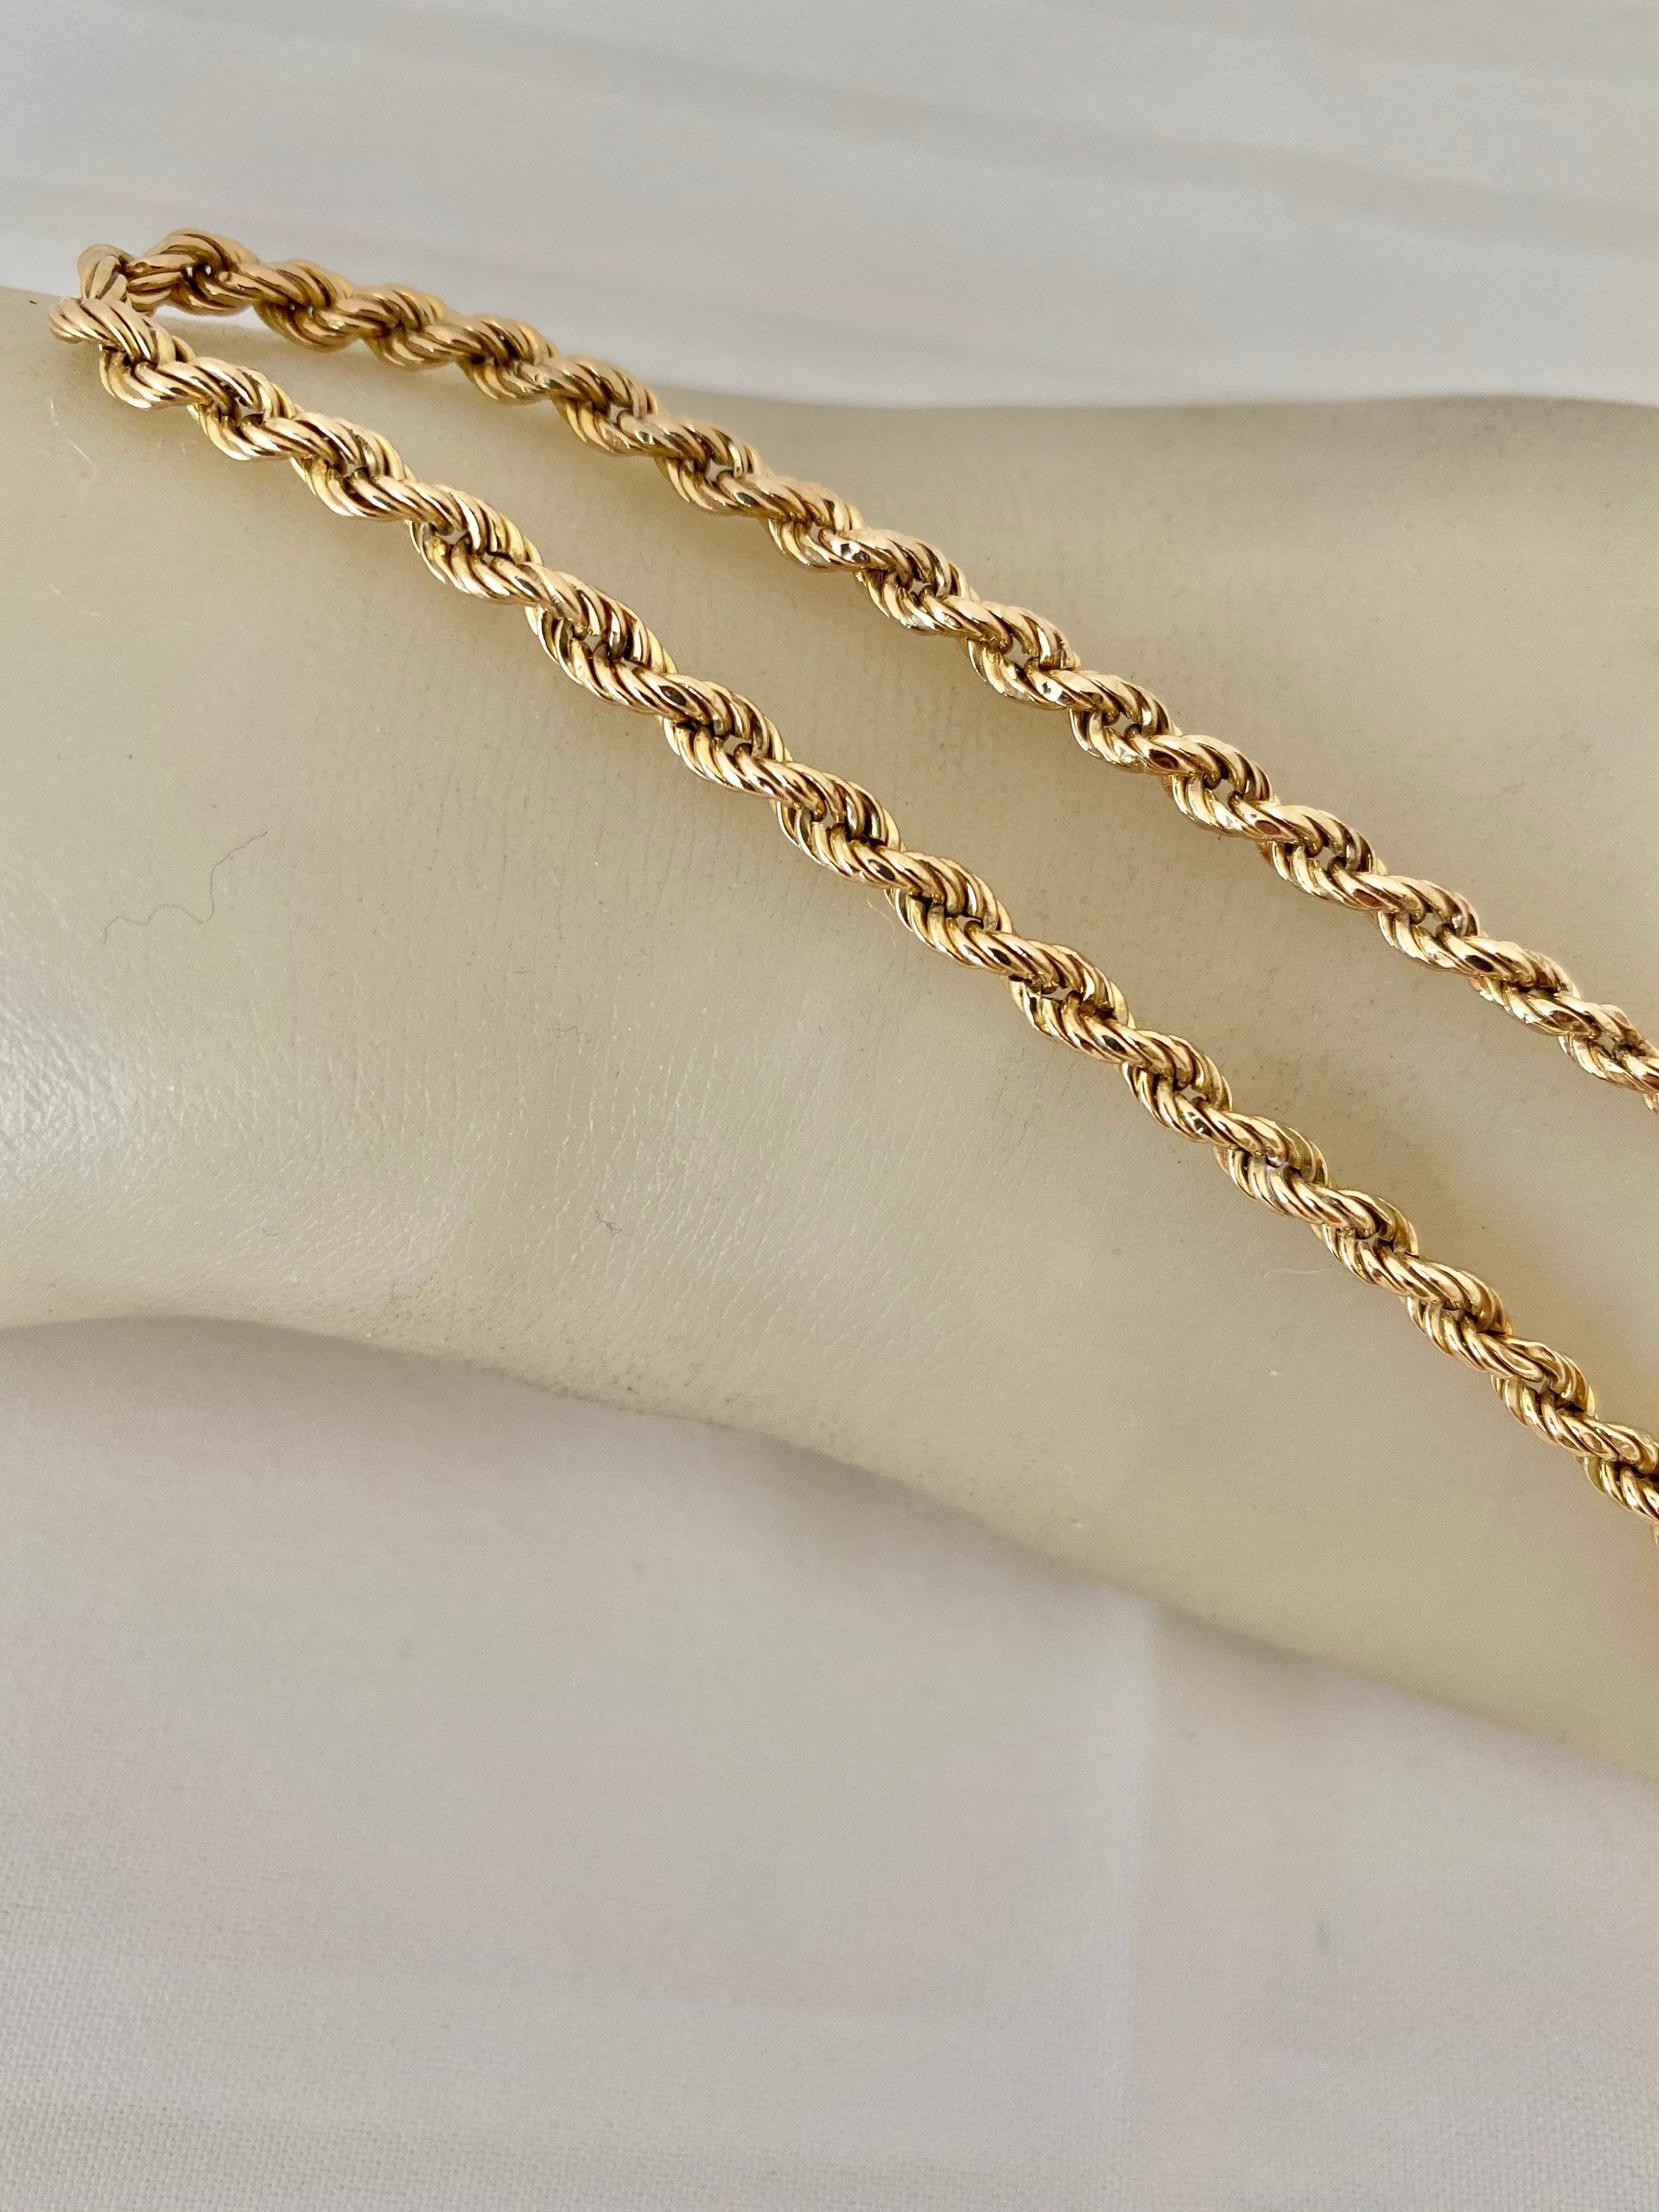 10k Gold Rope Chain Link Bracelet Yellow Gold 8 75 Length Weight 3 12 Grams In 2020 Chain Link Bracelet Gold Rope Chains Gold Chain Necklace